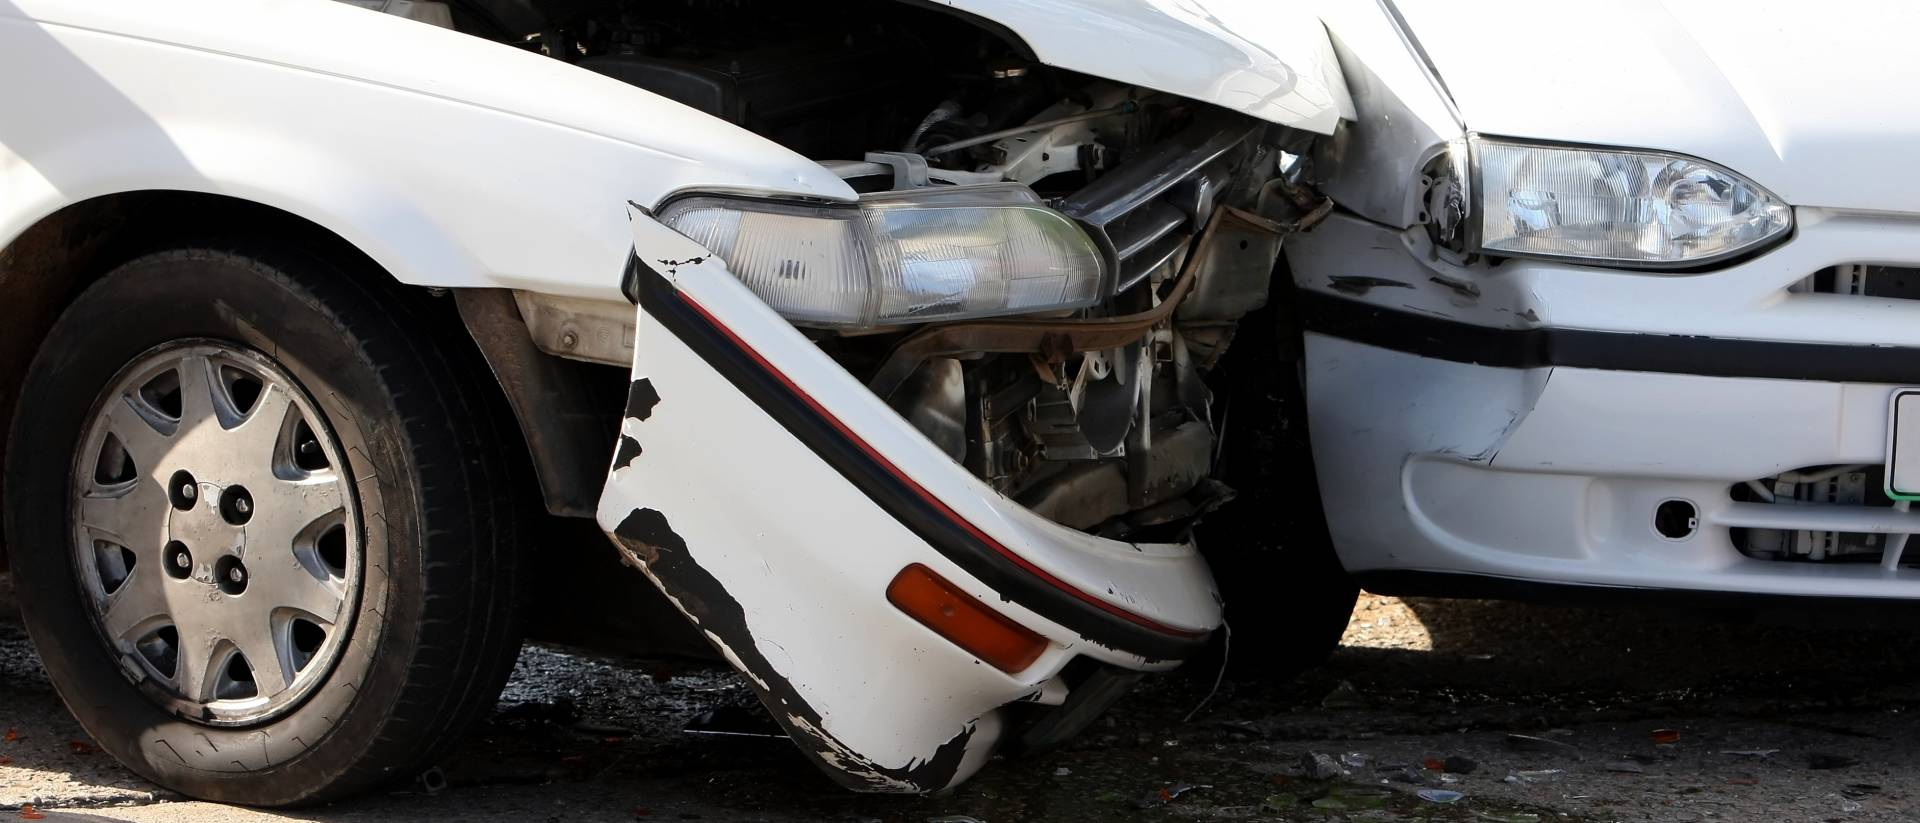 The Legal Rights Of A Passenger Injured In A Car Accident In West Palm Beach